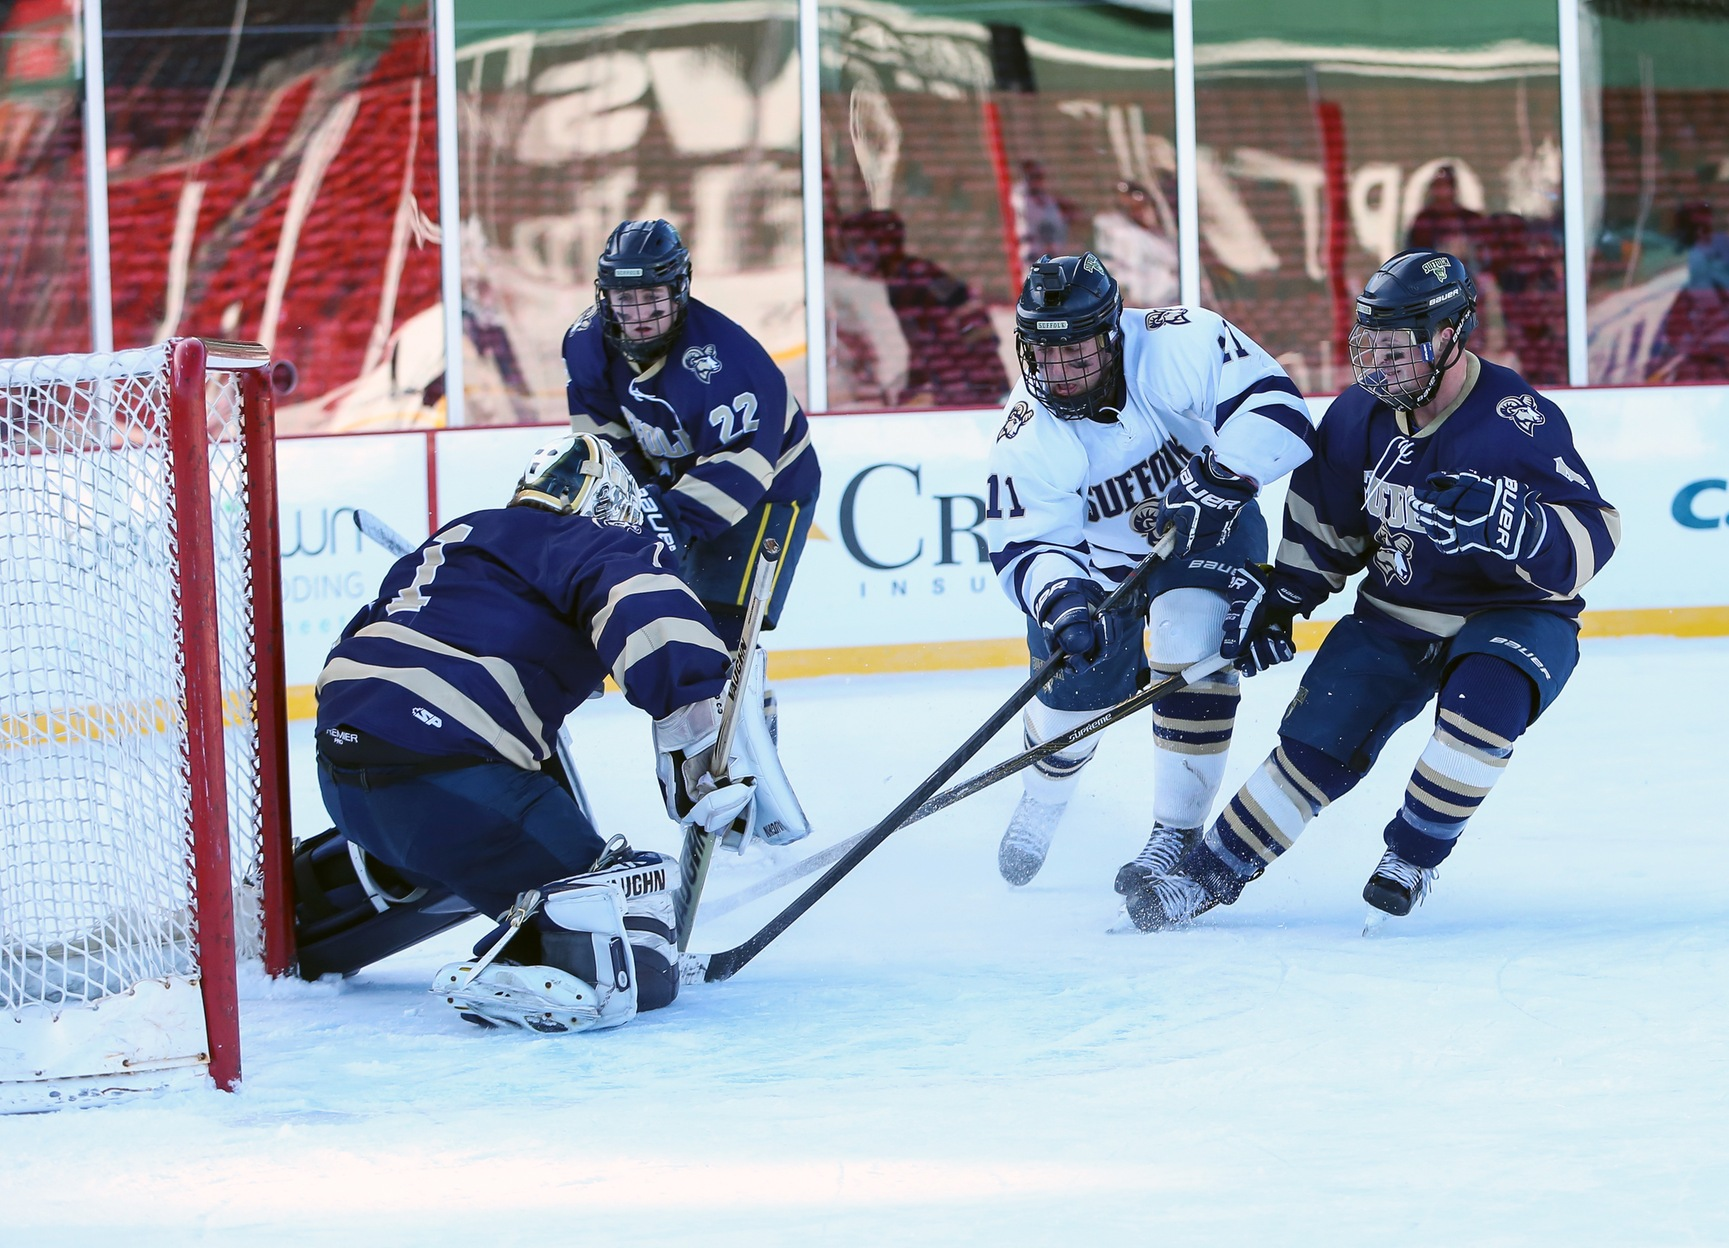 Visit to Wentworth on Calendar for Men's Hockey Thursday